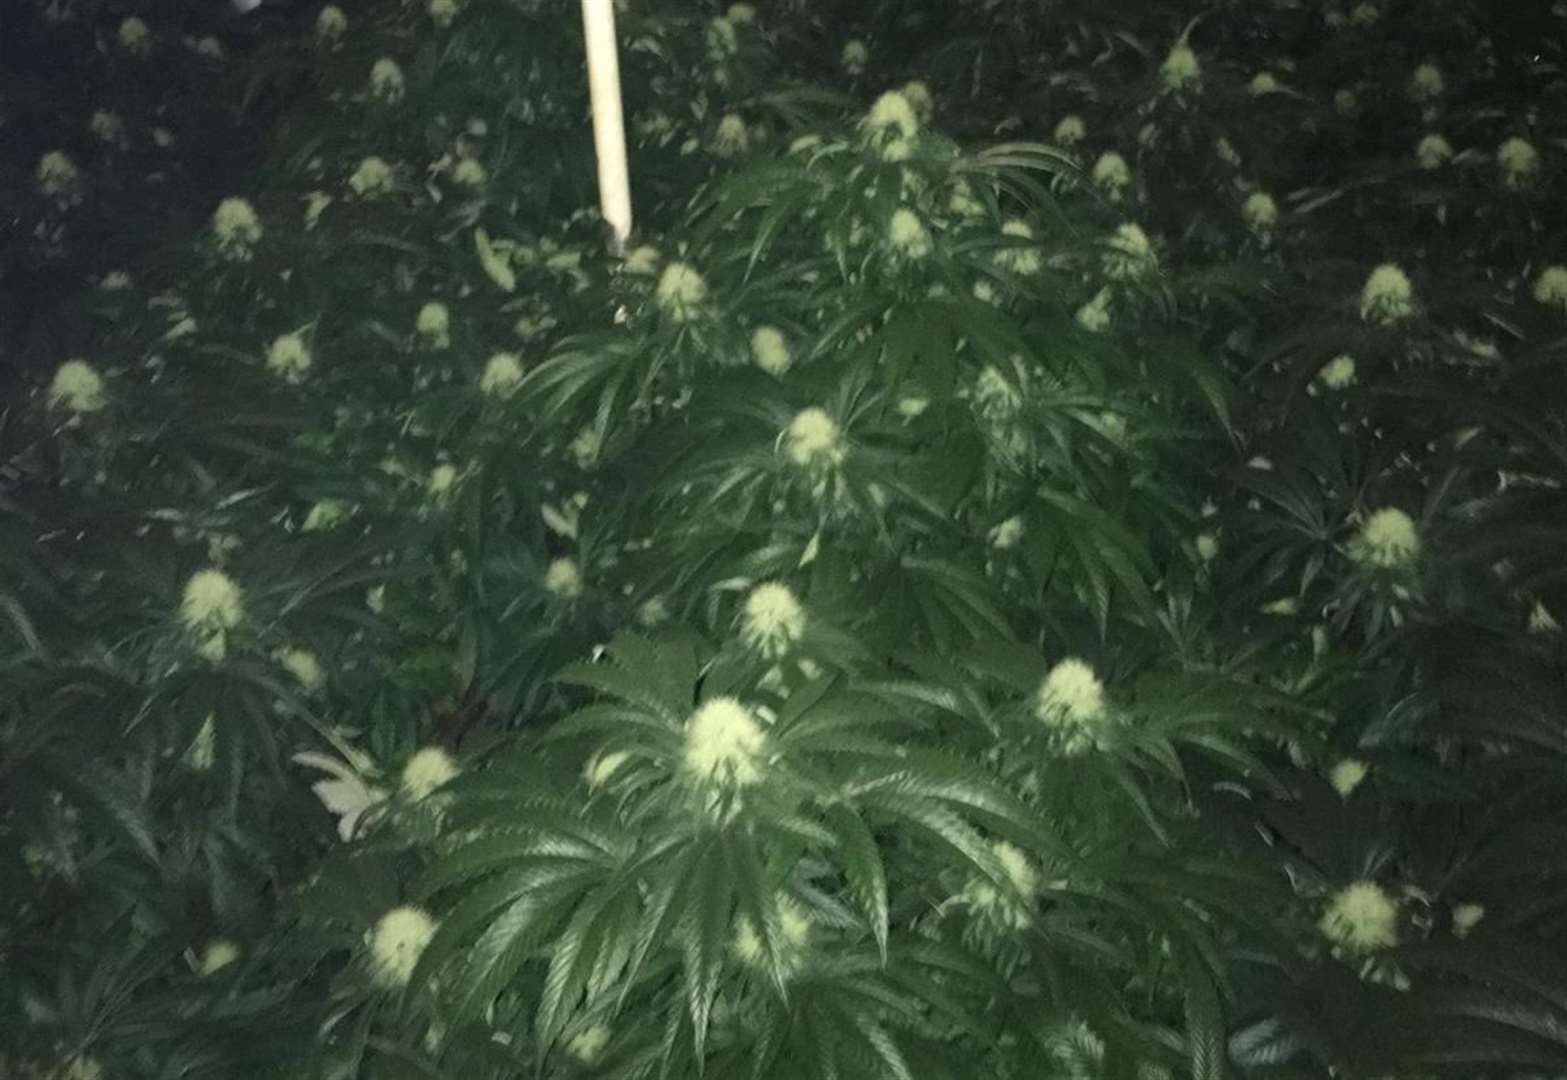 Huge cannabis factory uncovered in Fenland village